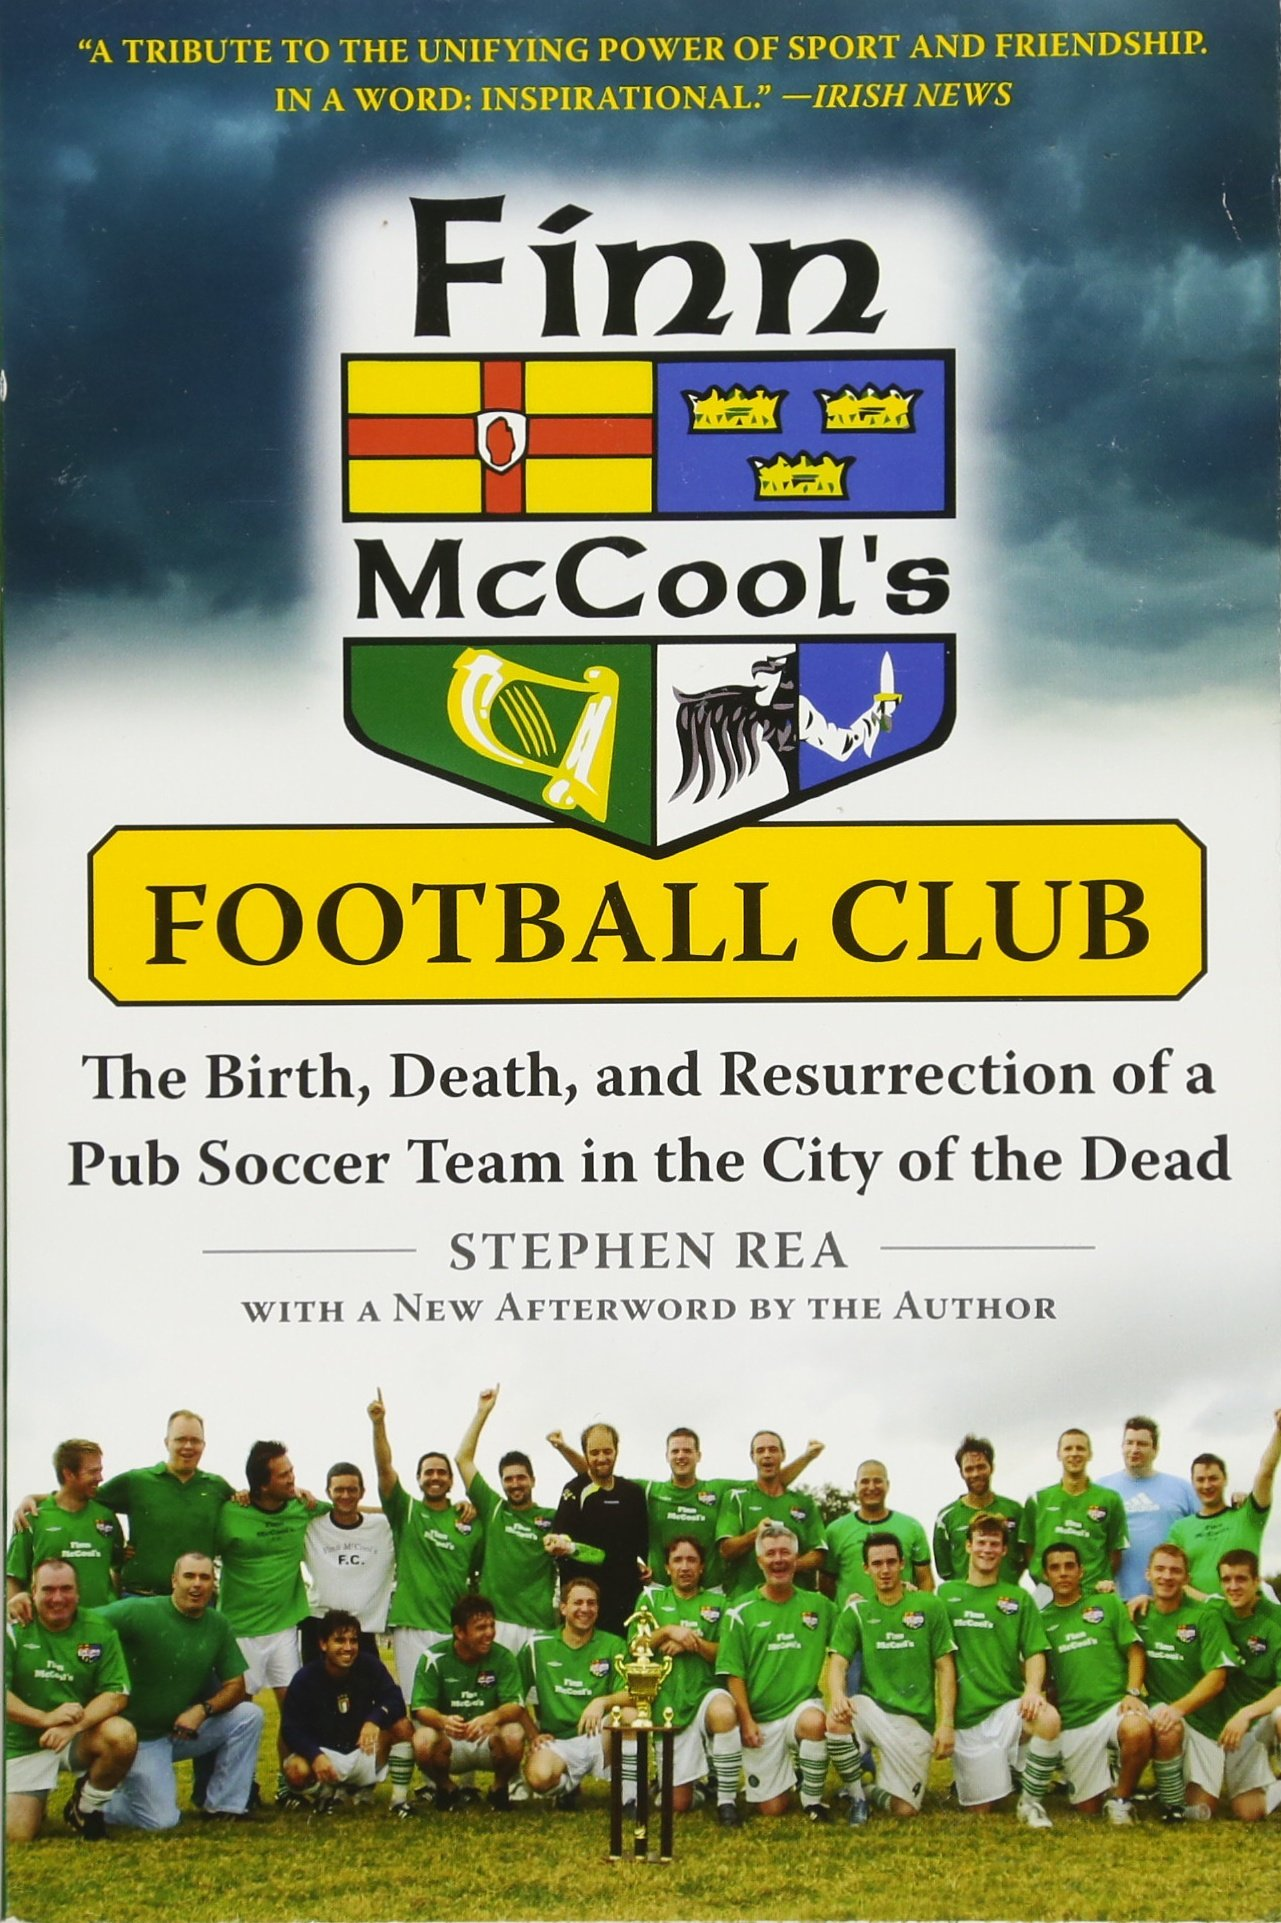 Finn McCool's Football Club: The Birth, Death, and Resurrection of a Pub Soccer Team in the City of the Dead